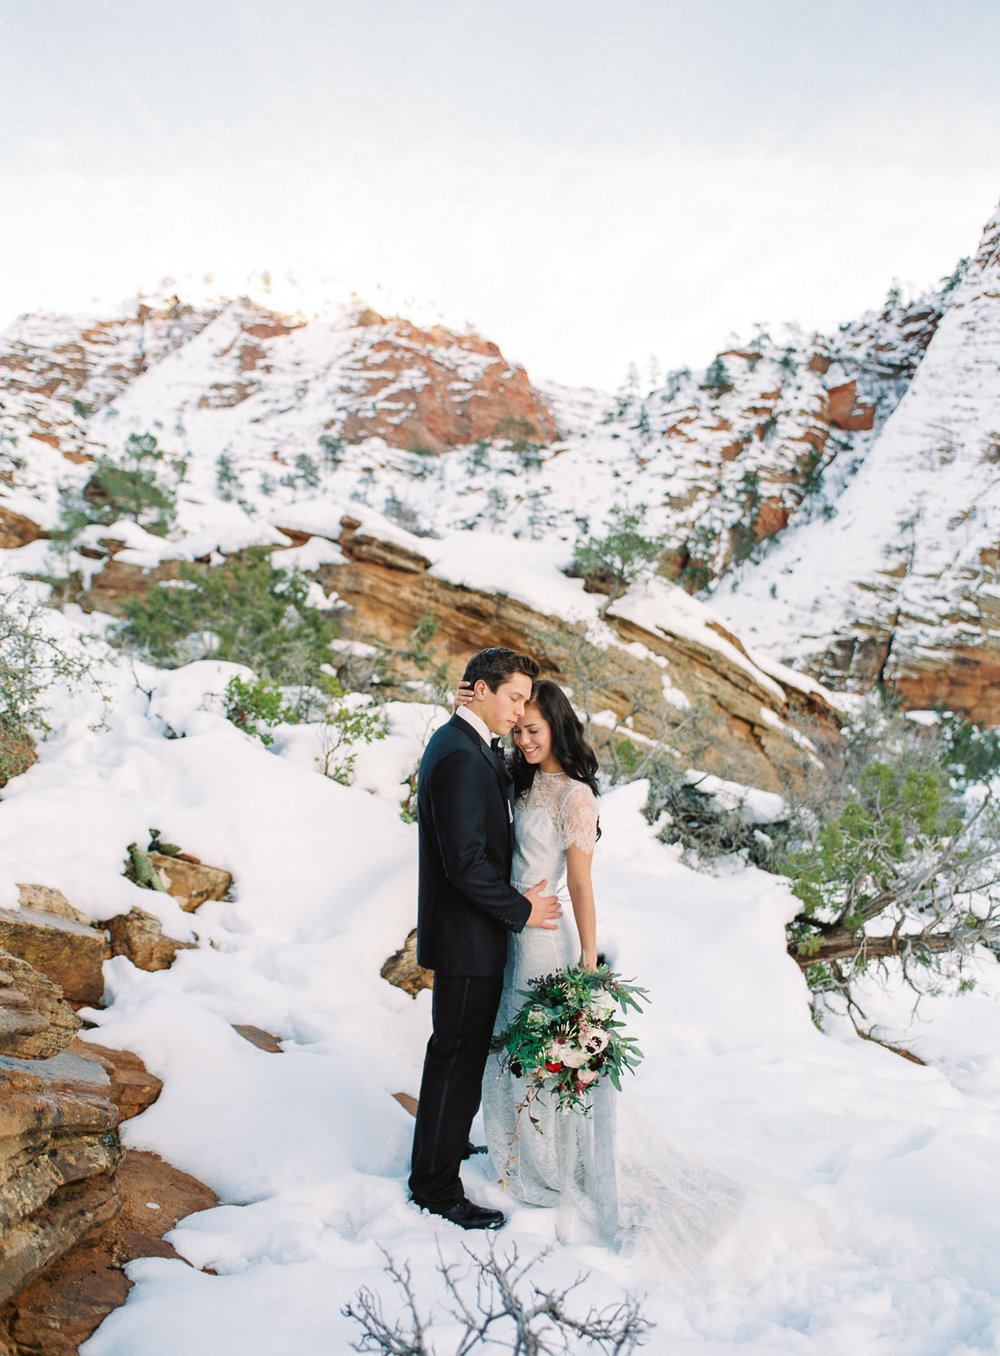 Fine art film Zion National Park Elopement Fuji 400h Boutique Film Lab